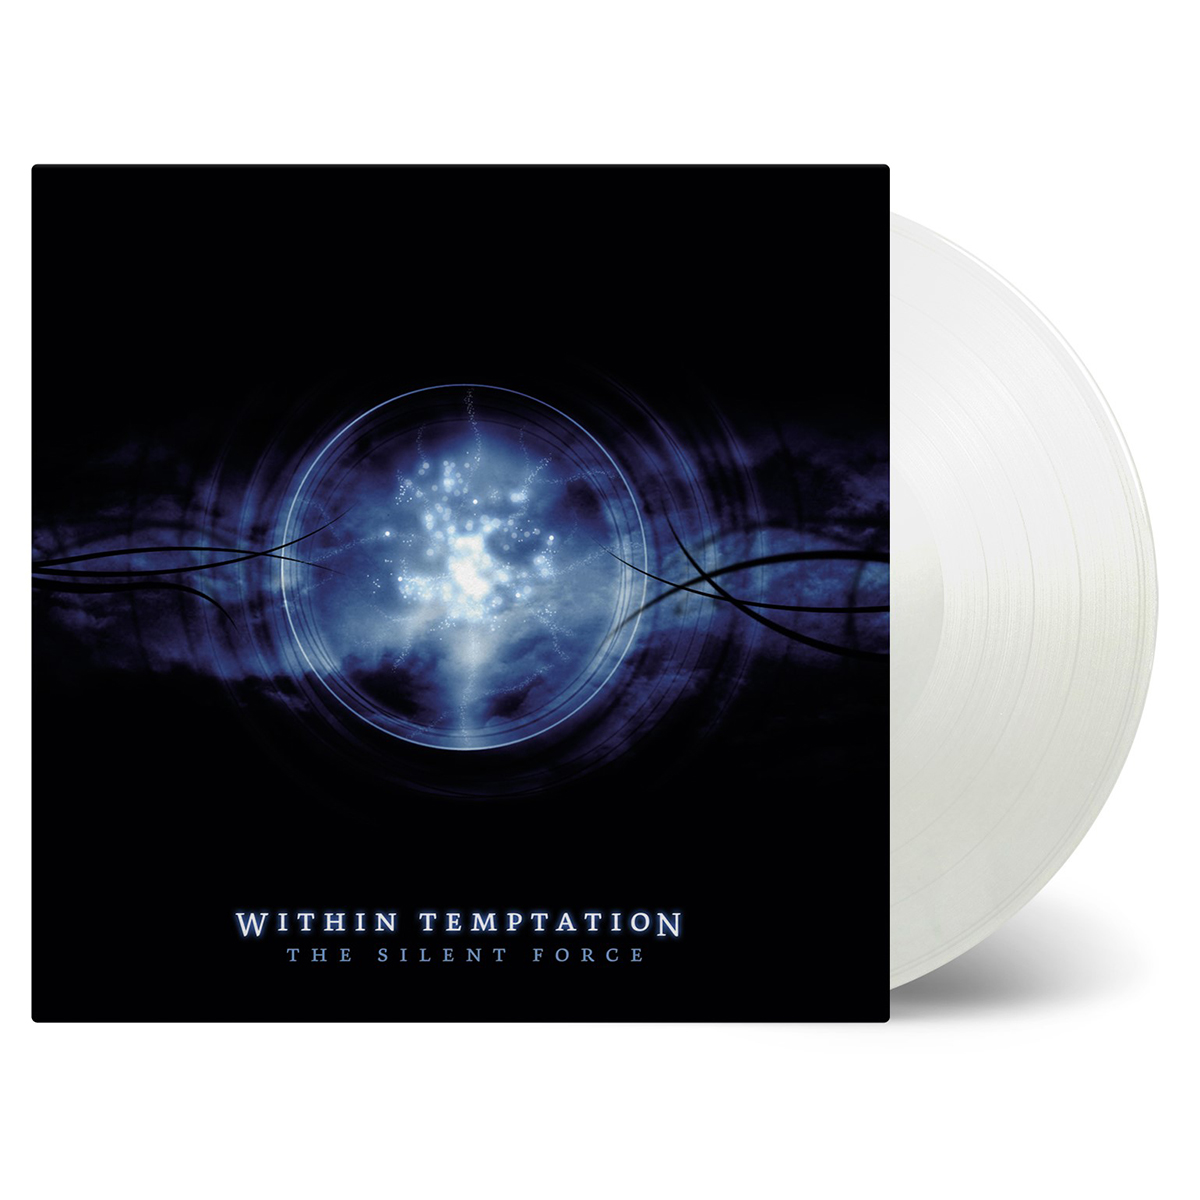 The Silent Force – LTD Edition Clear Vinyl LP - Within Temptation